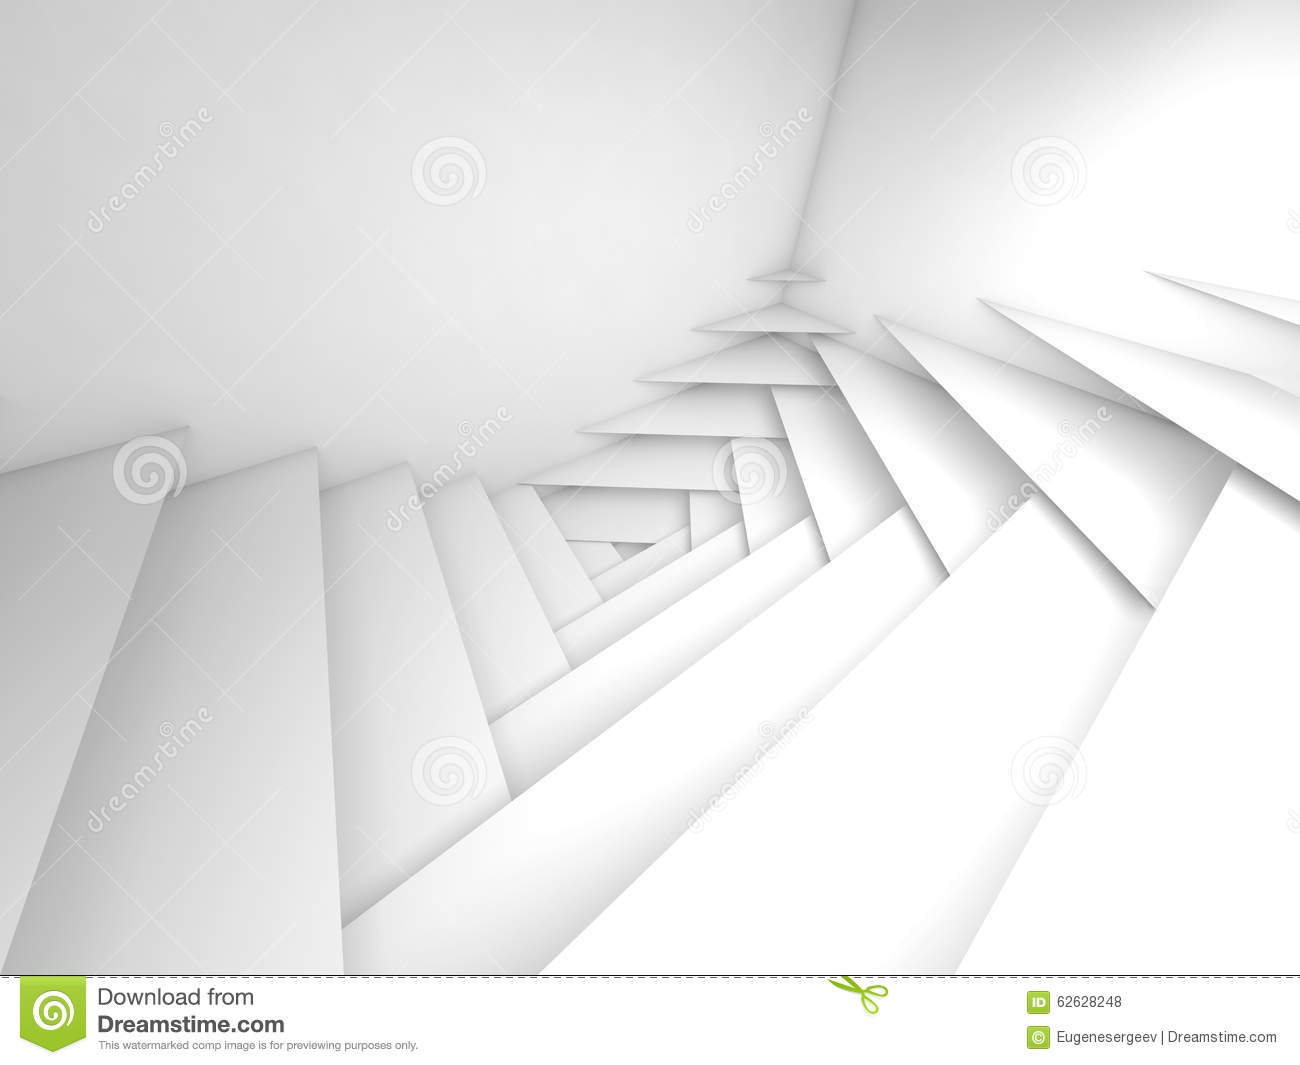 White 3d Background Abstract: Abstract Geometric Background. White Layers 3d Art Stock